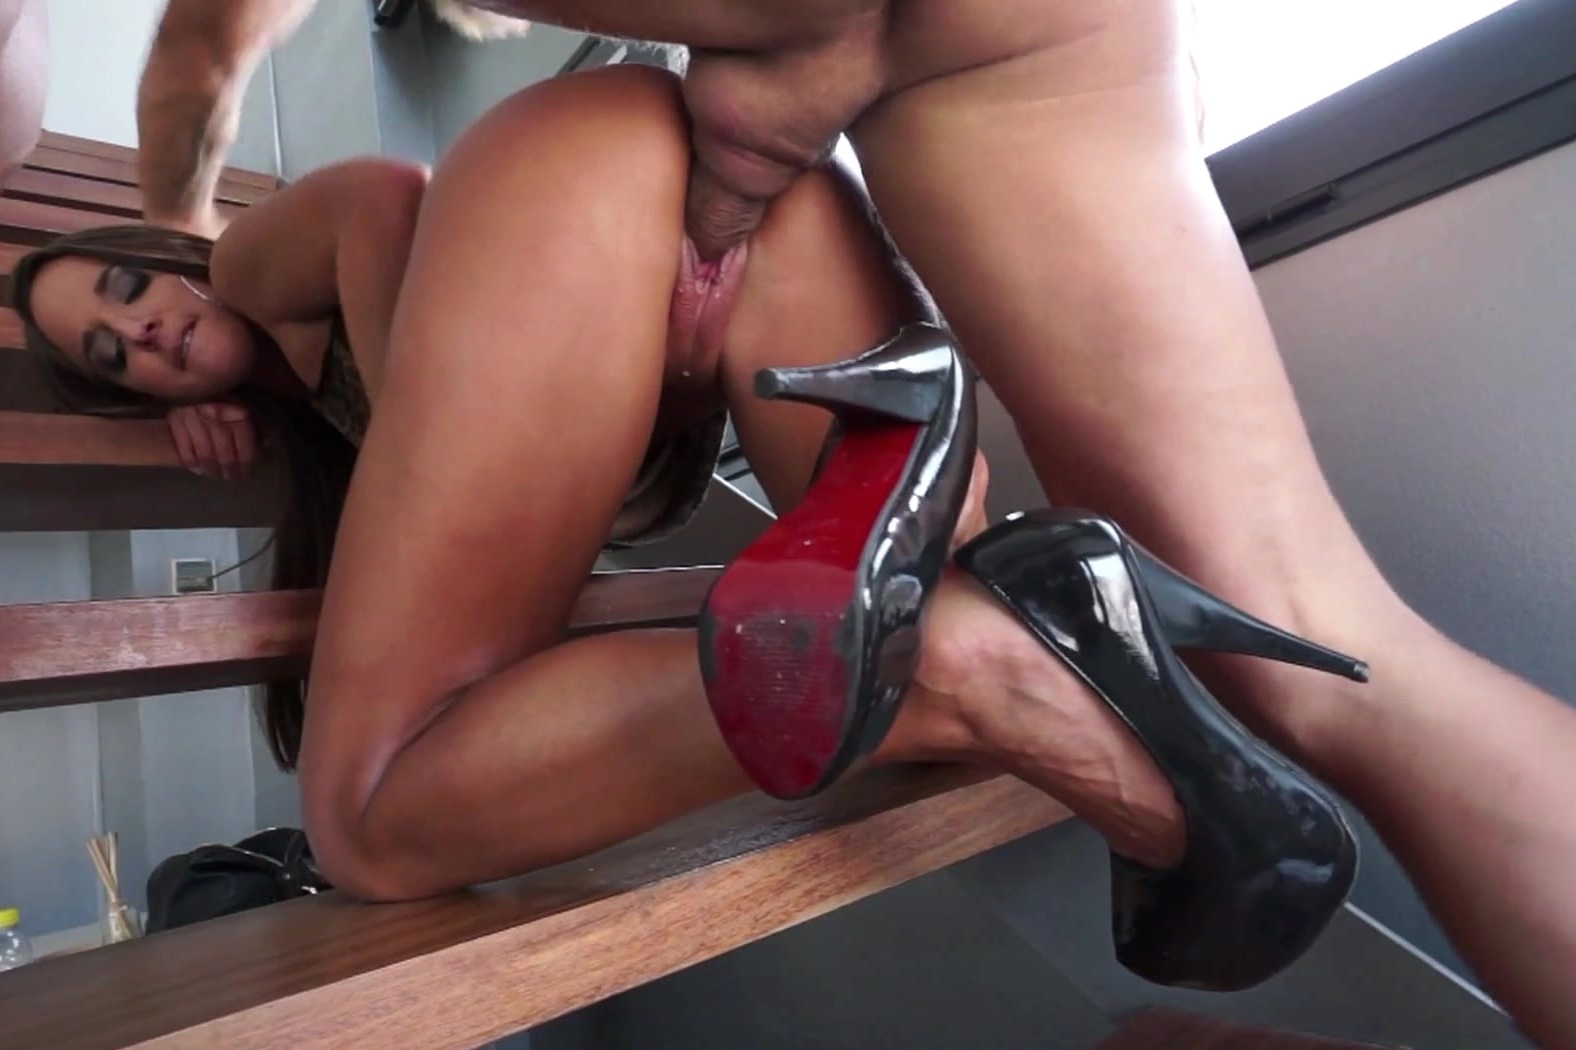 hot woman fucked by dog